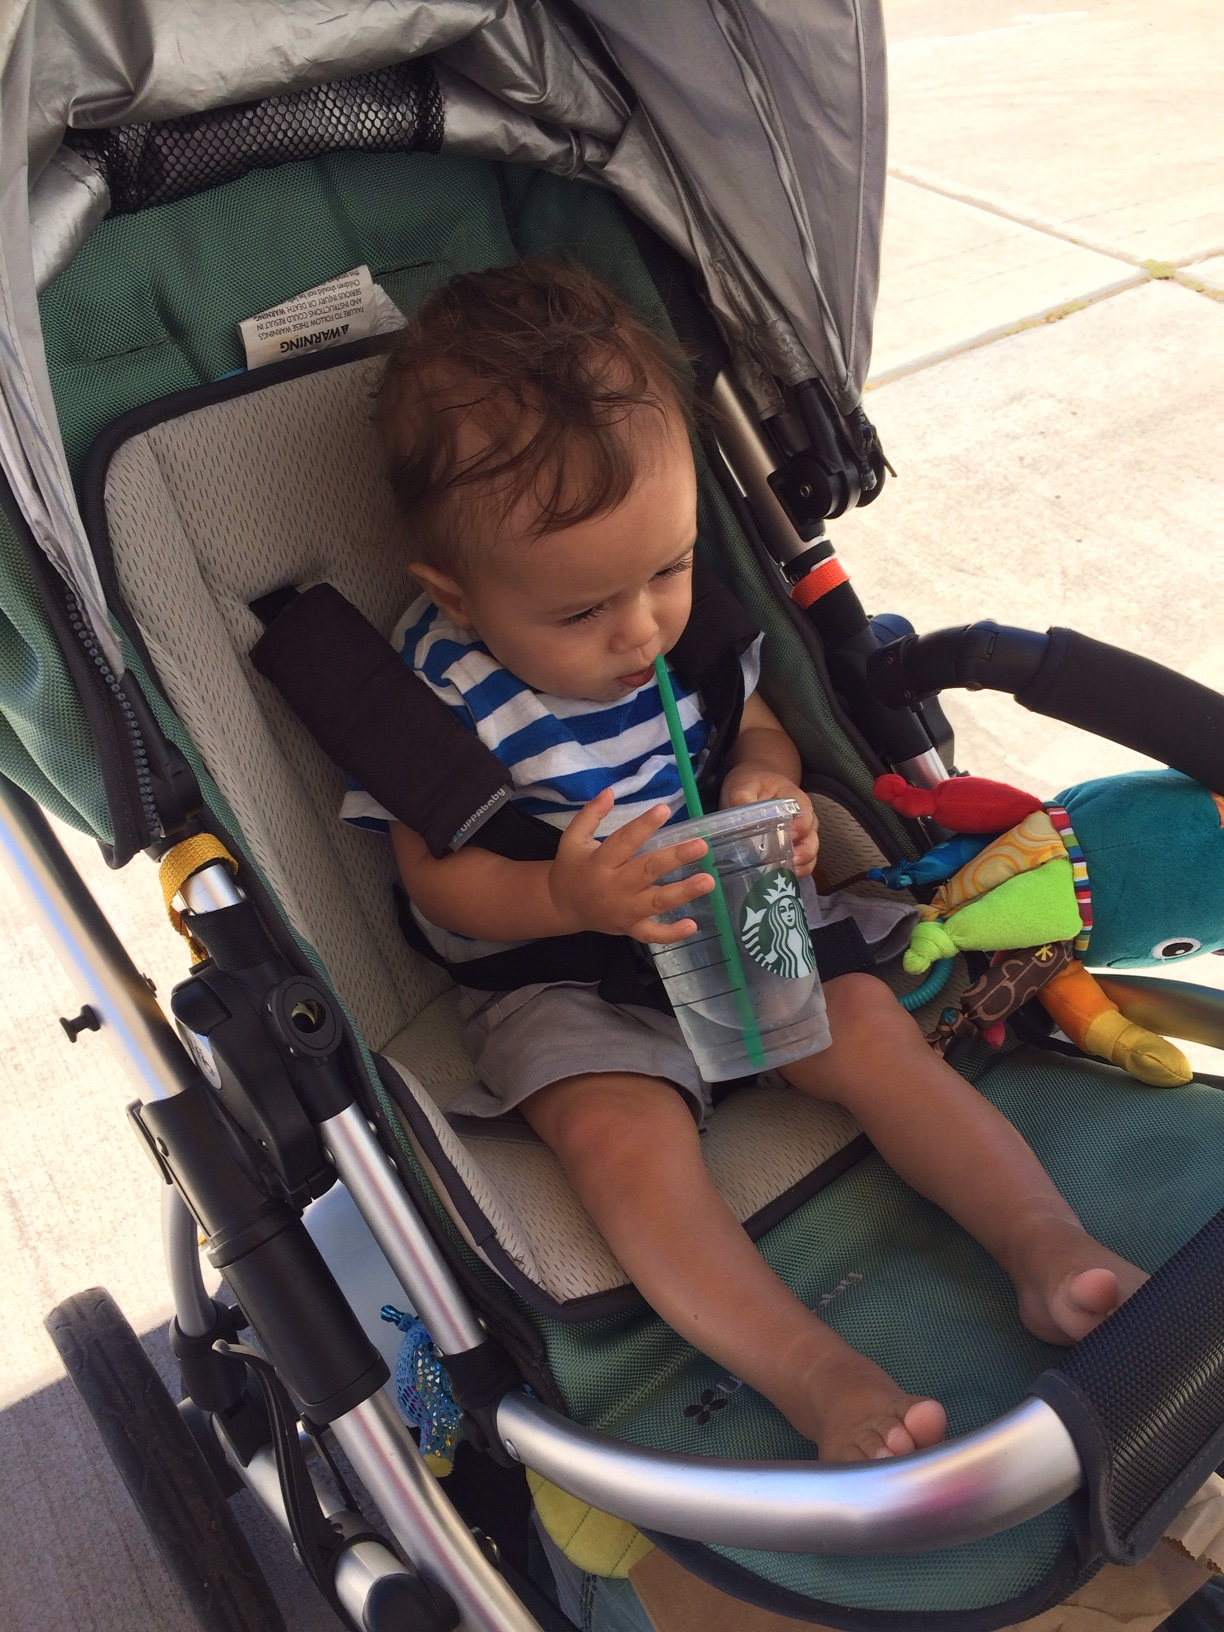 Baby boy o with Starbucks cup